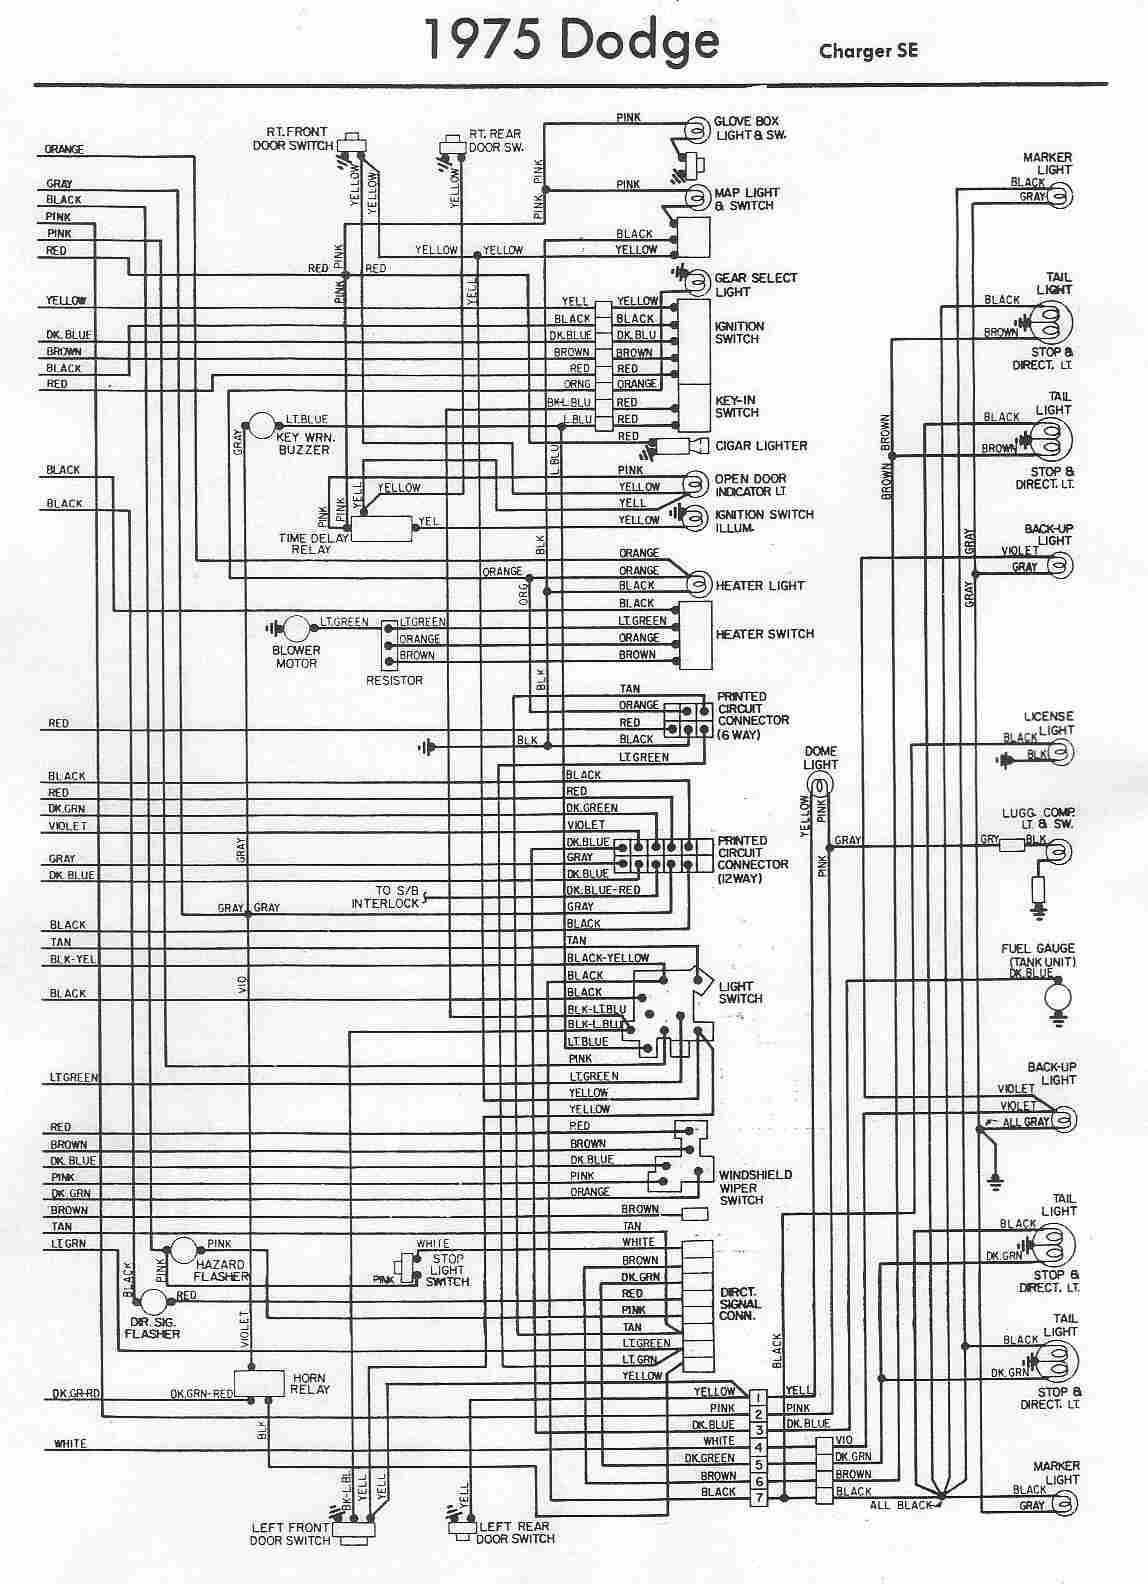 Dodge Car Manuals Wiring Diagrams Pdf Fault Codes Diagram For Mercury Vapour Light Free Download